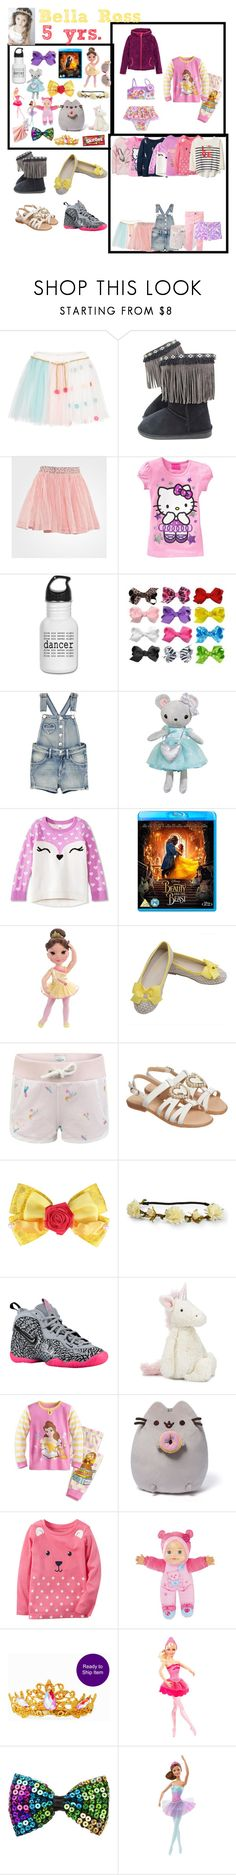 """Bella(5)"" by laylaitaly ❤ liked on Polyvore featuring Carter's, Billieblush, Noa Noa, Hello Kitty, Disney, Moschino, Aéropostale, NIKE, Jellycat and Lilly Pulitzer"